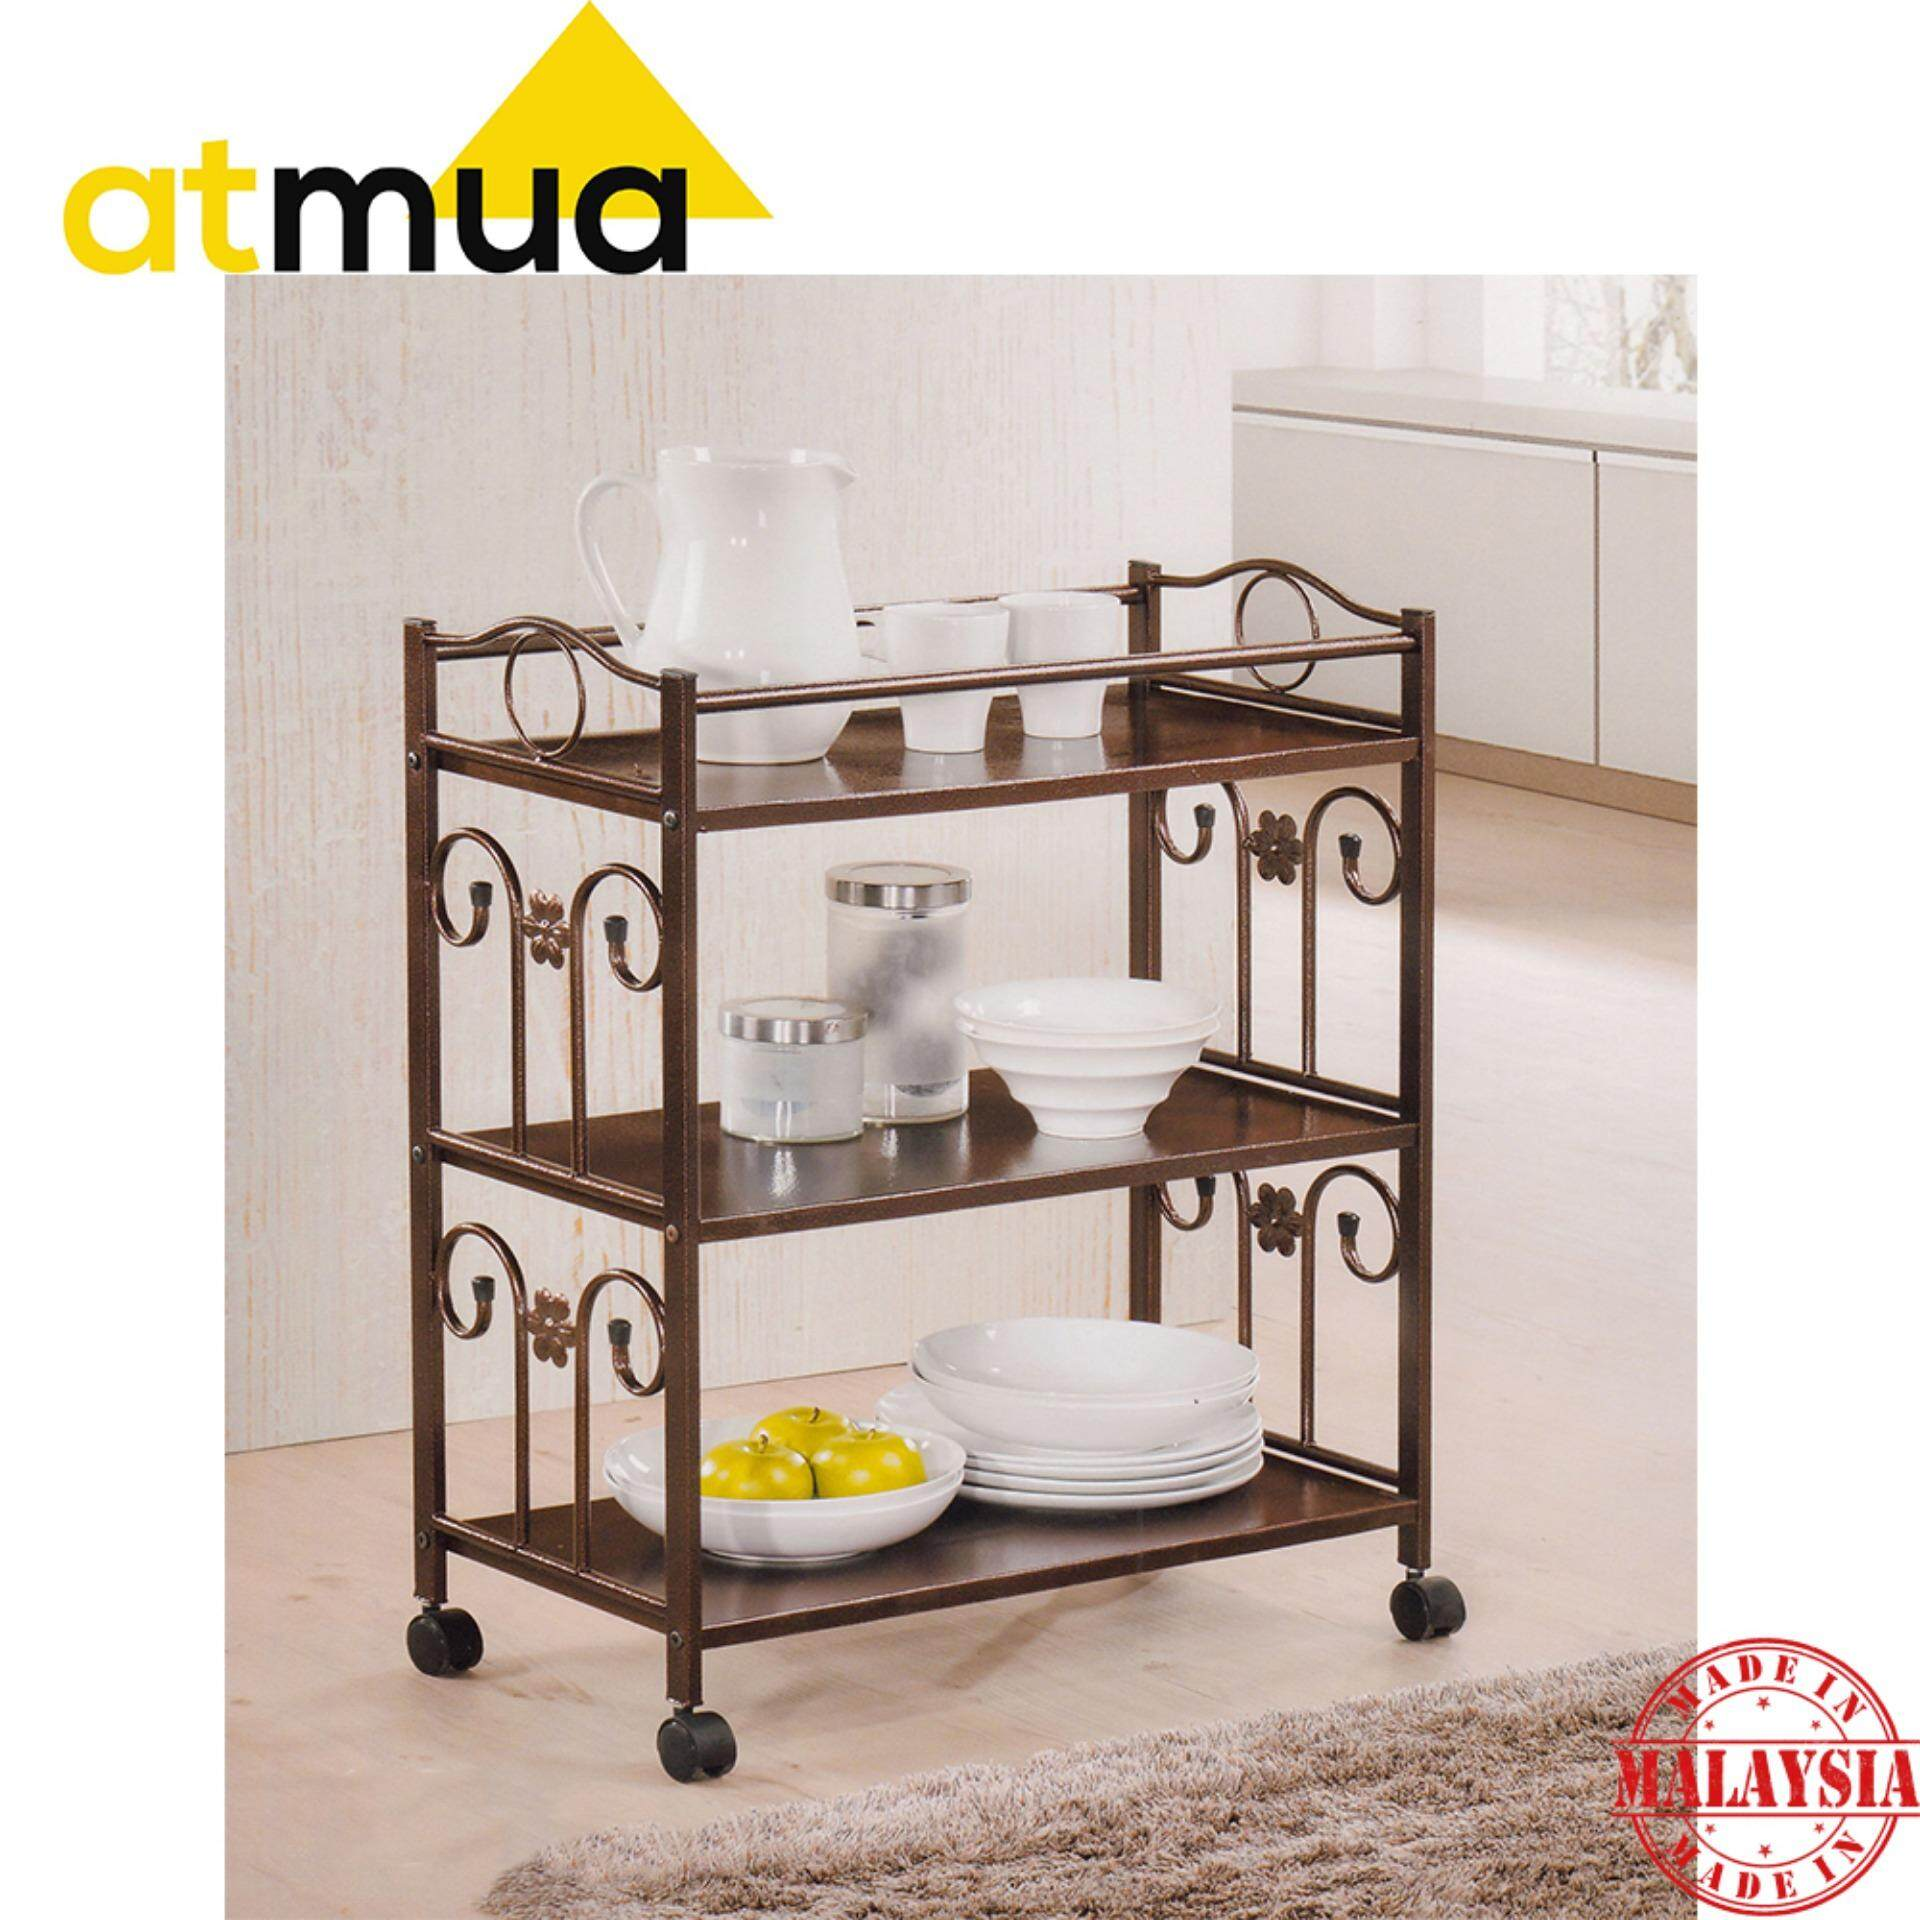 Atmua Rough Iron Trolley - 3 Tier with Lockable Roller [Rough Iron]